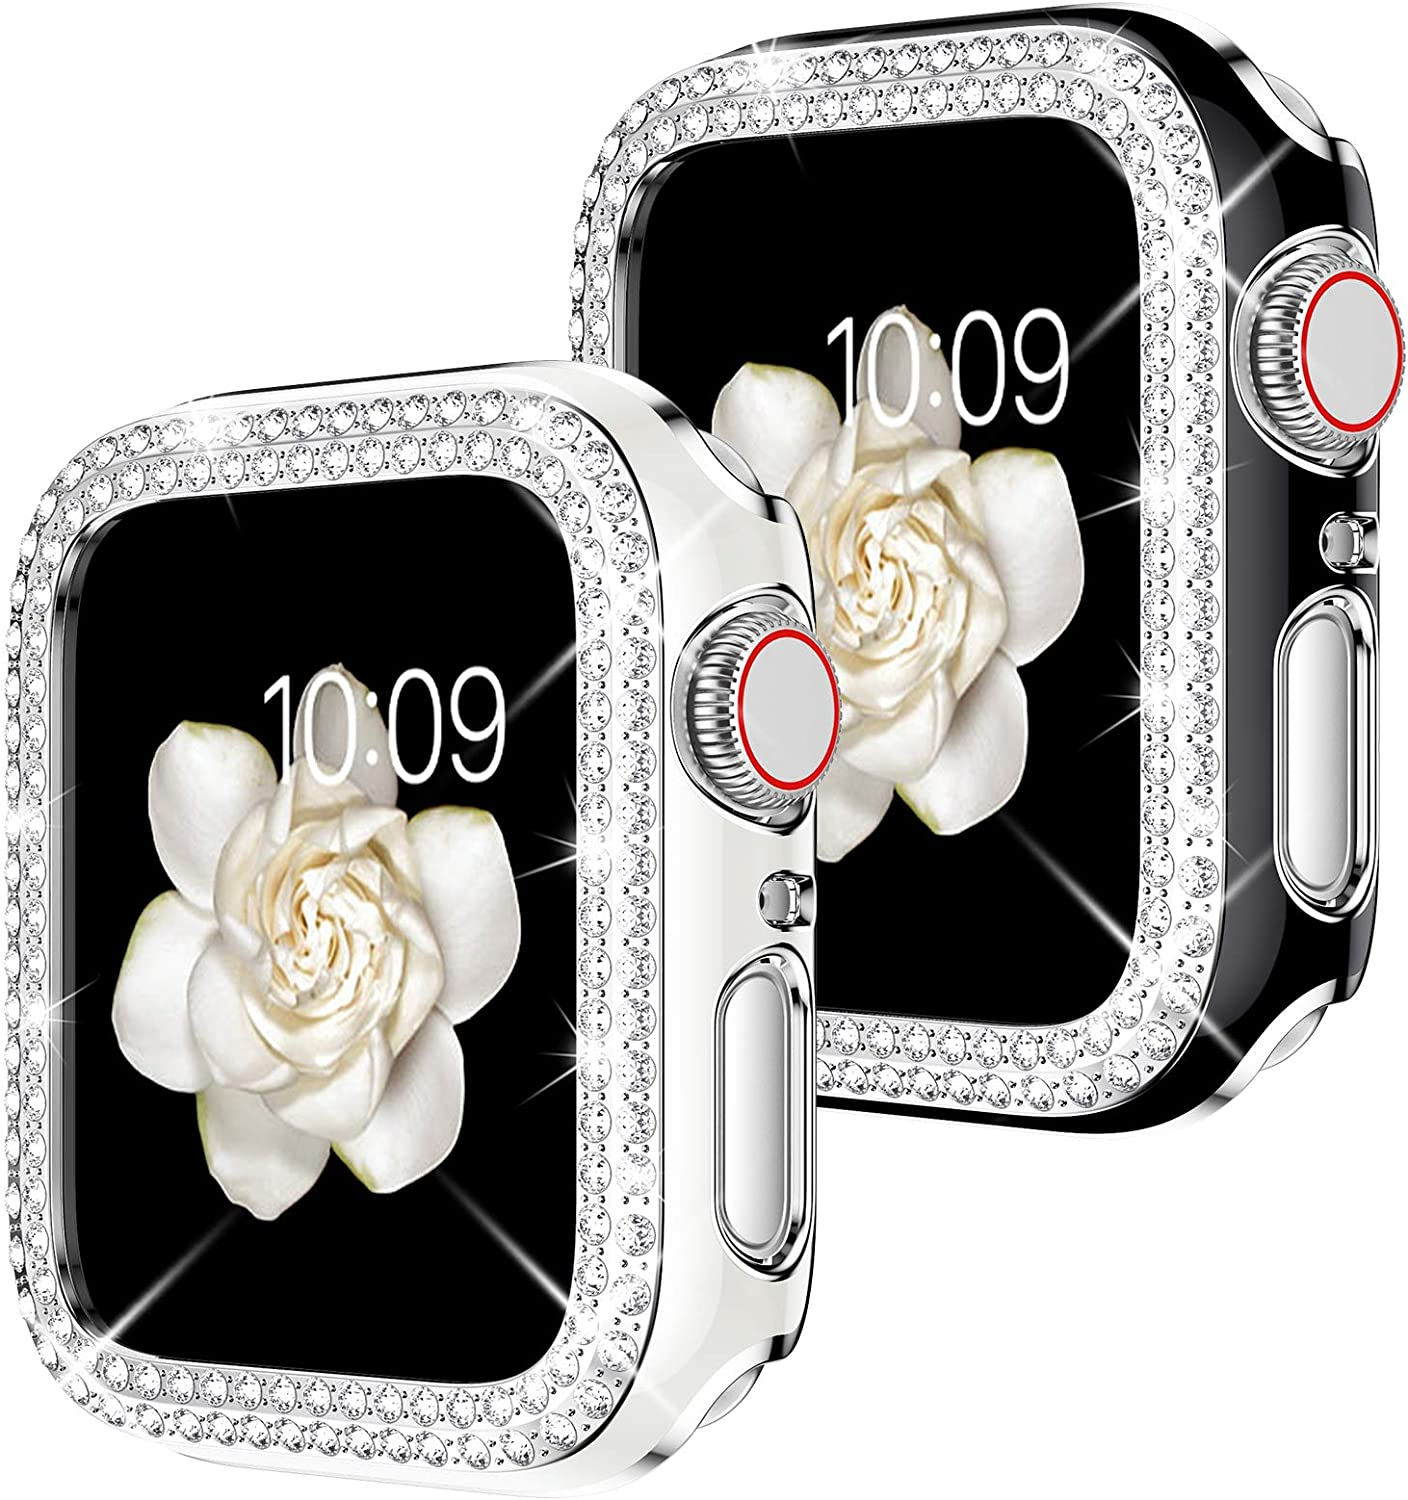 Goton Watch Cover Compatible for Apple Watch Series Case iWatch Face Cover, Women Bling Crystal Diamond Watch Bumper Protector Shockproof PC Protective Frame (Black+White, 38mm)